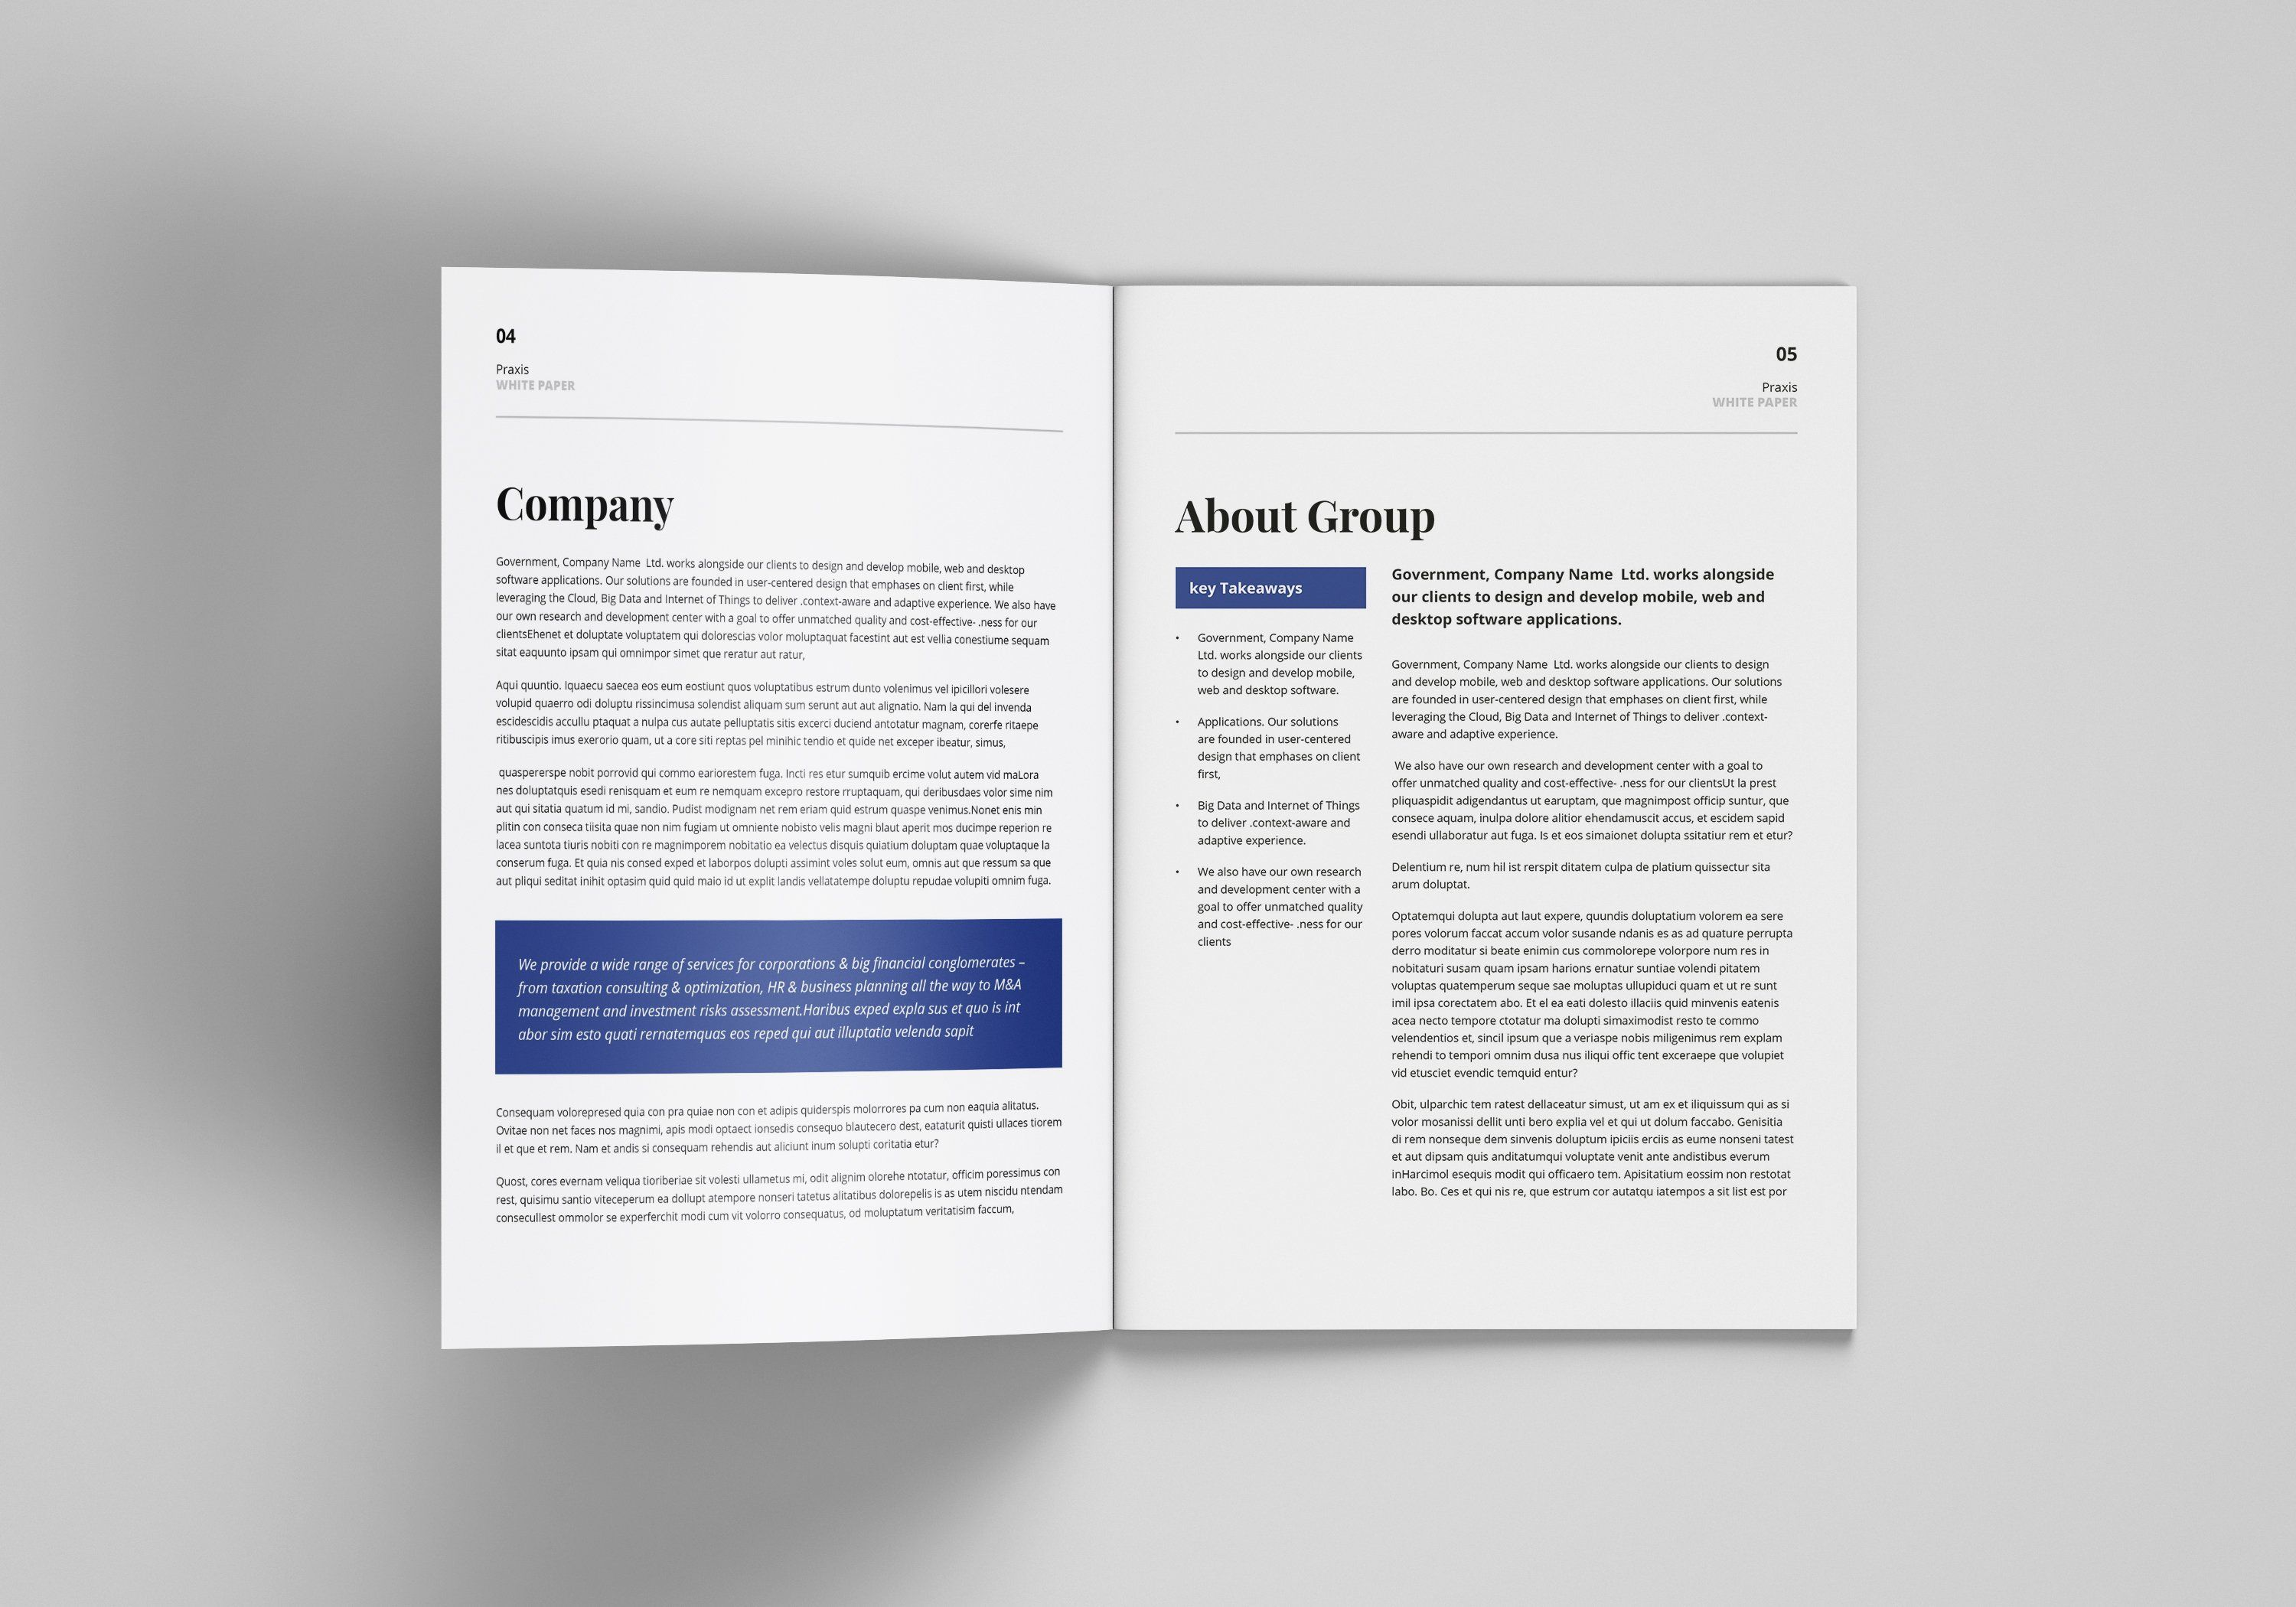 White Paper Template Word Paper Template Template Word Graphic Design Layouts